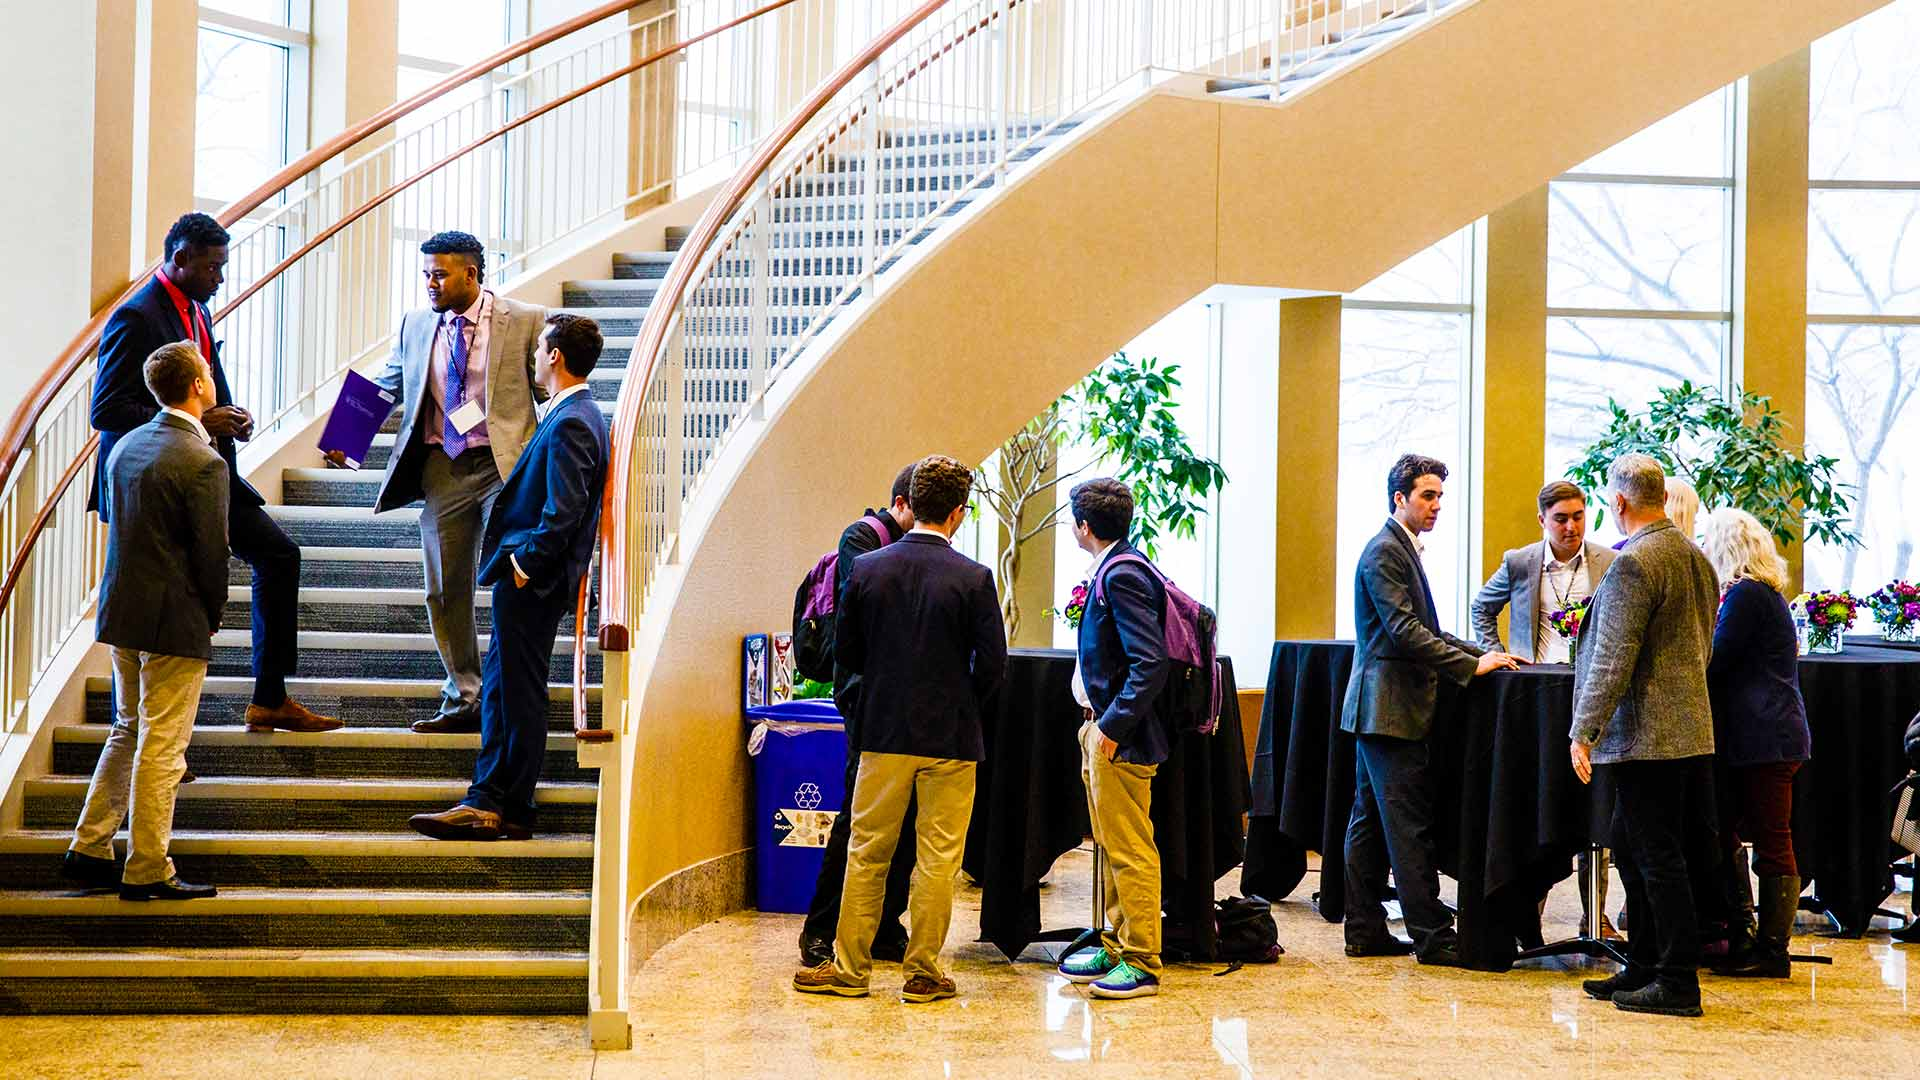 Guests converse during an event held in the Schulze Hall atrium.